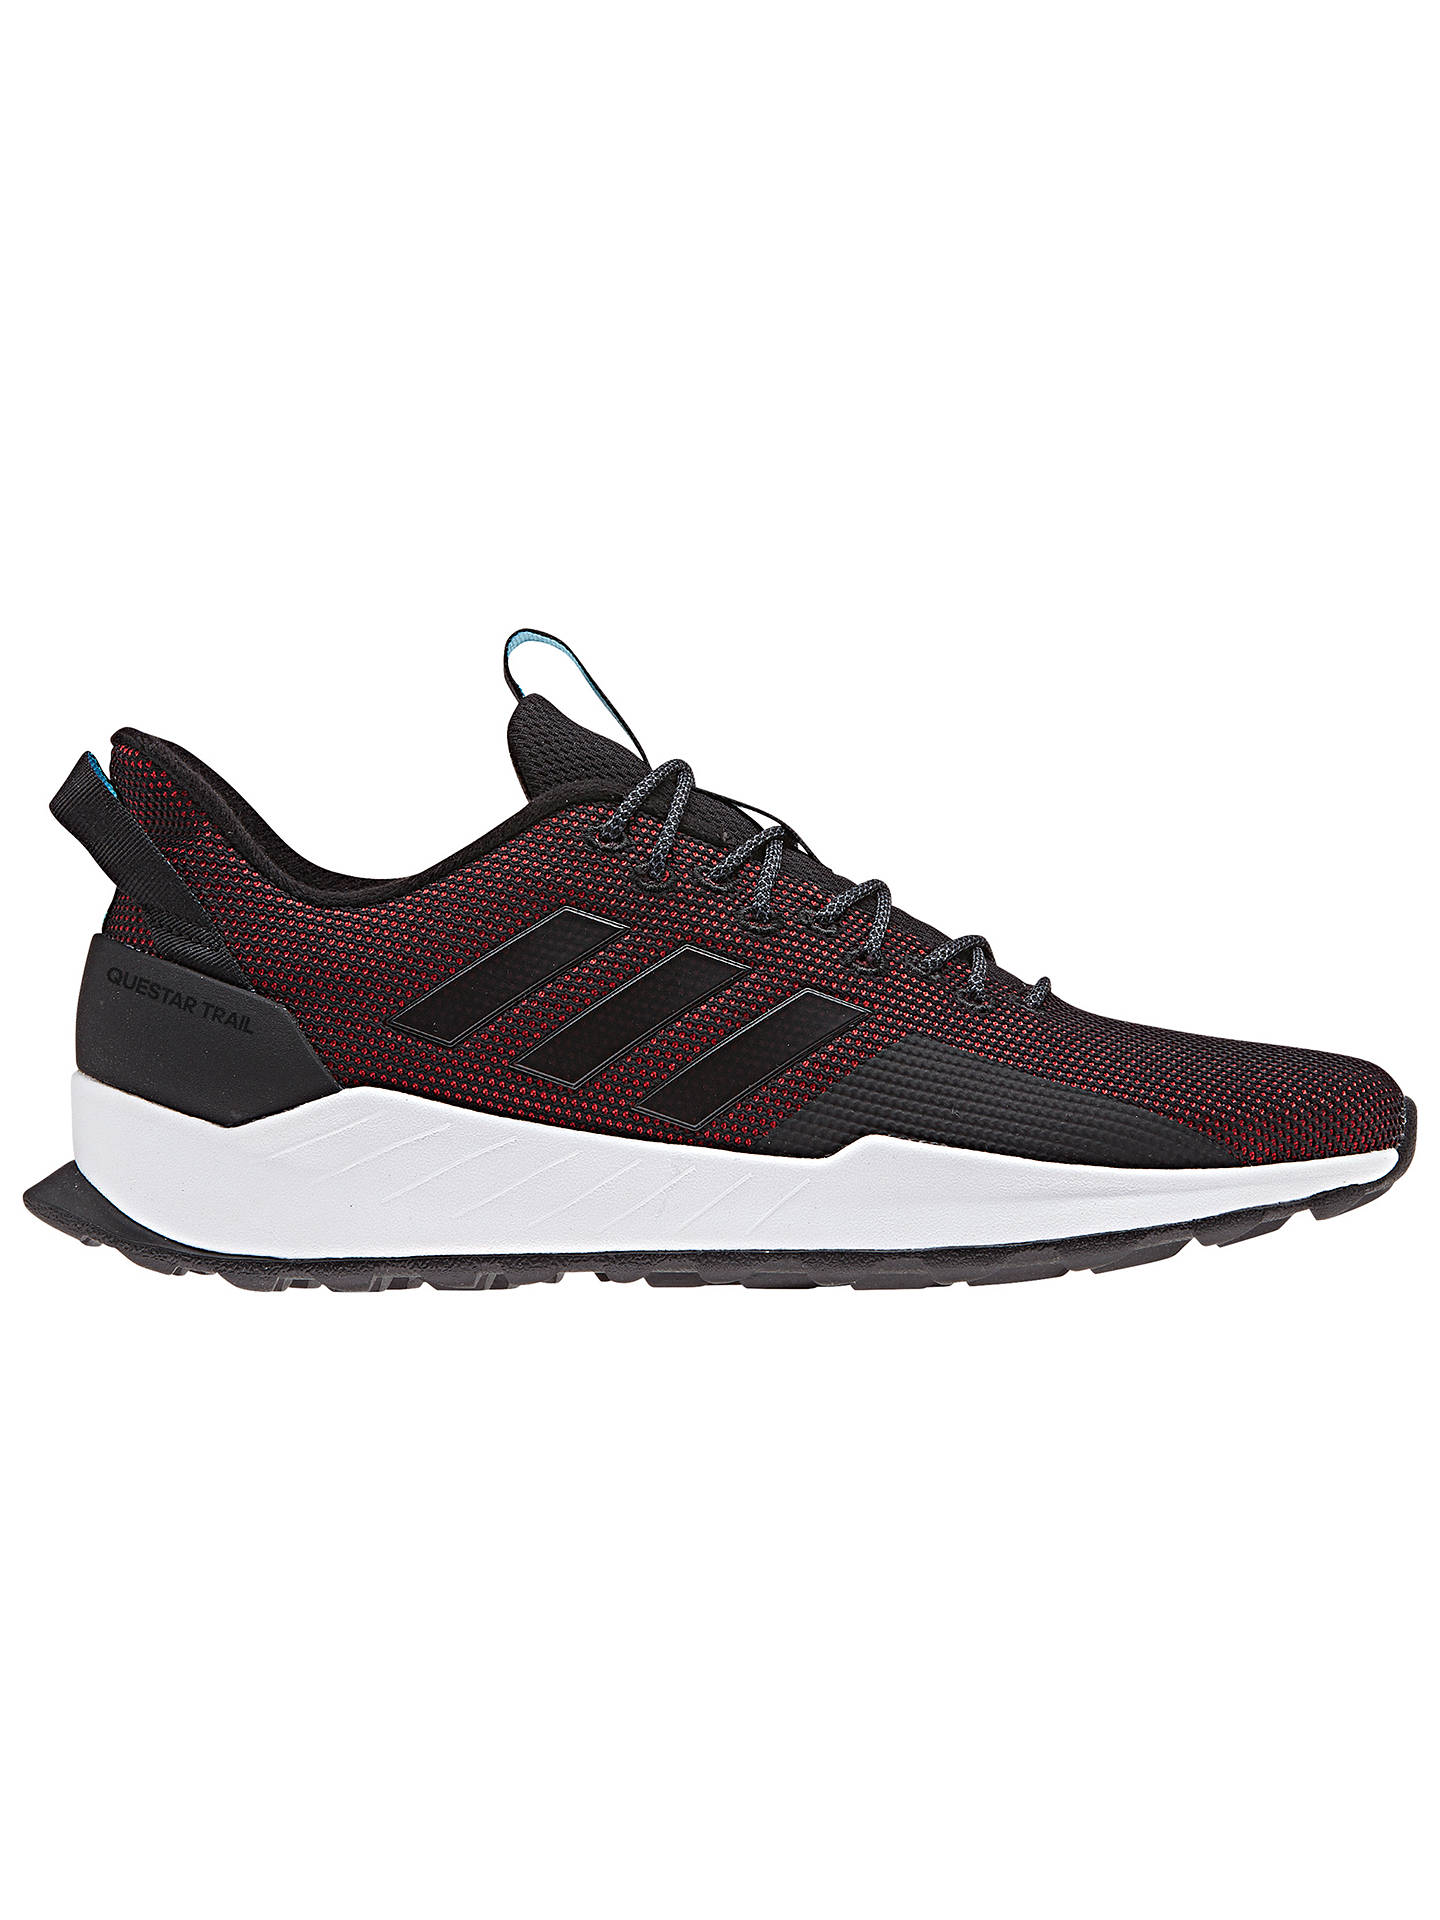 901b67258 Buy adidas Questar Trail Men s Running Shoes